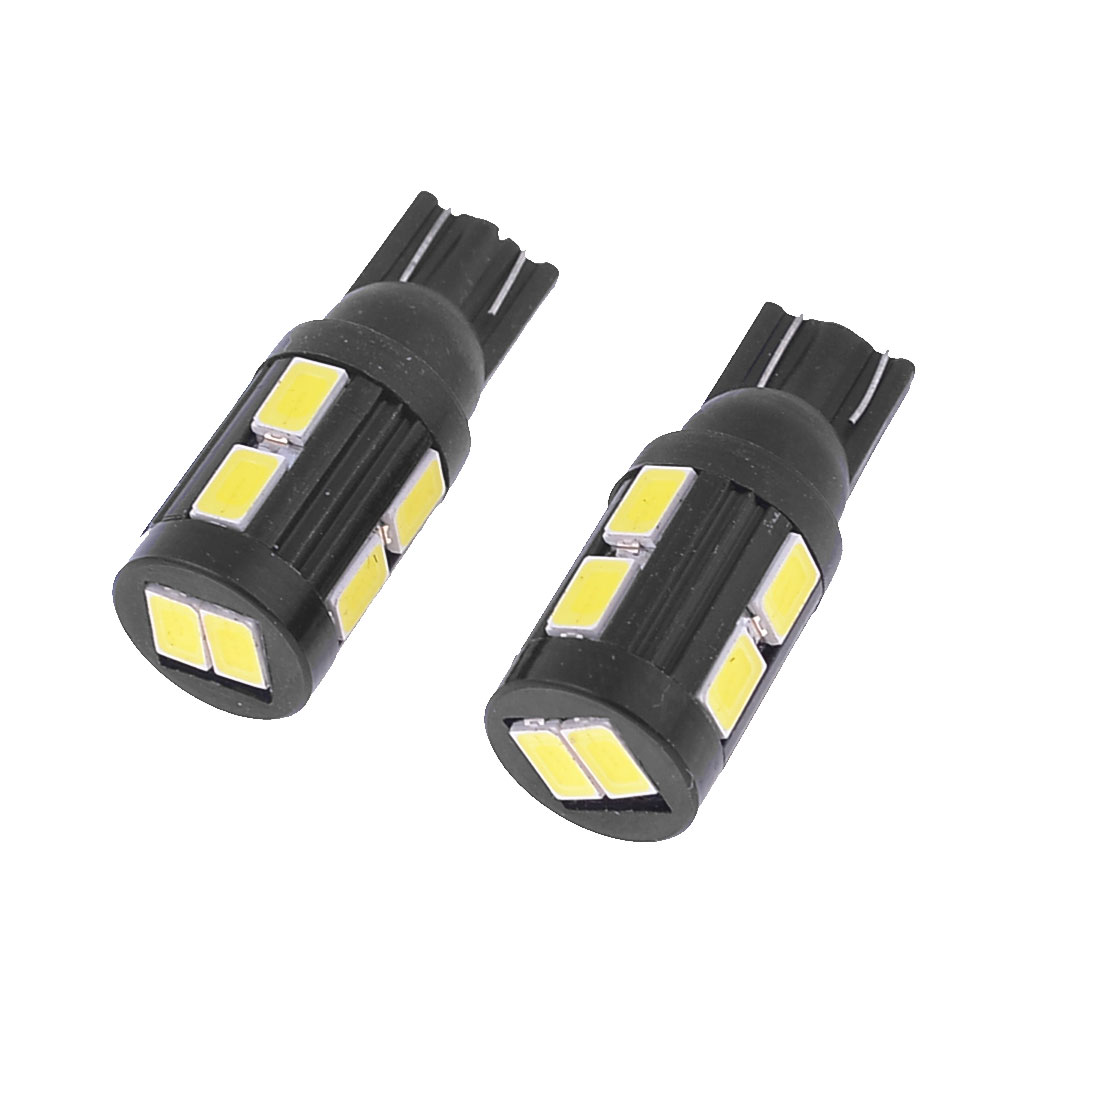 2PCS T10 1250 1252 W5W White 5630 SMD 10-LED Dashboard Light Lamp for Car